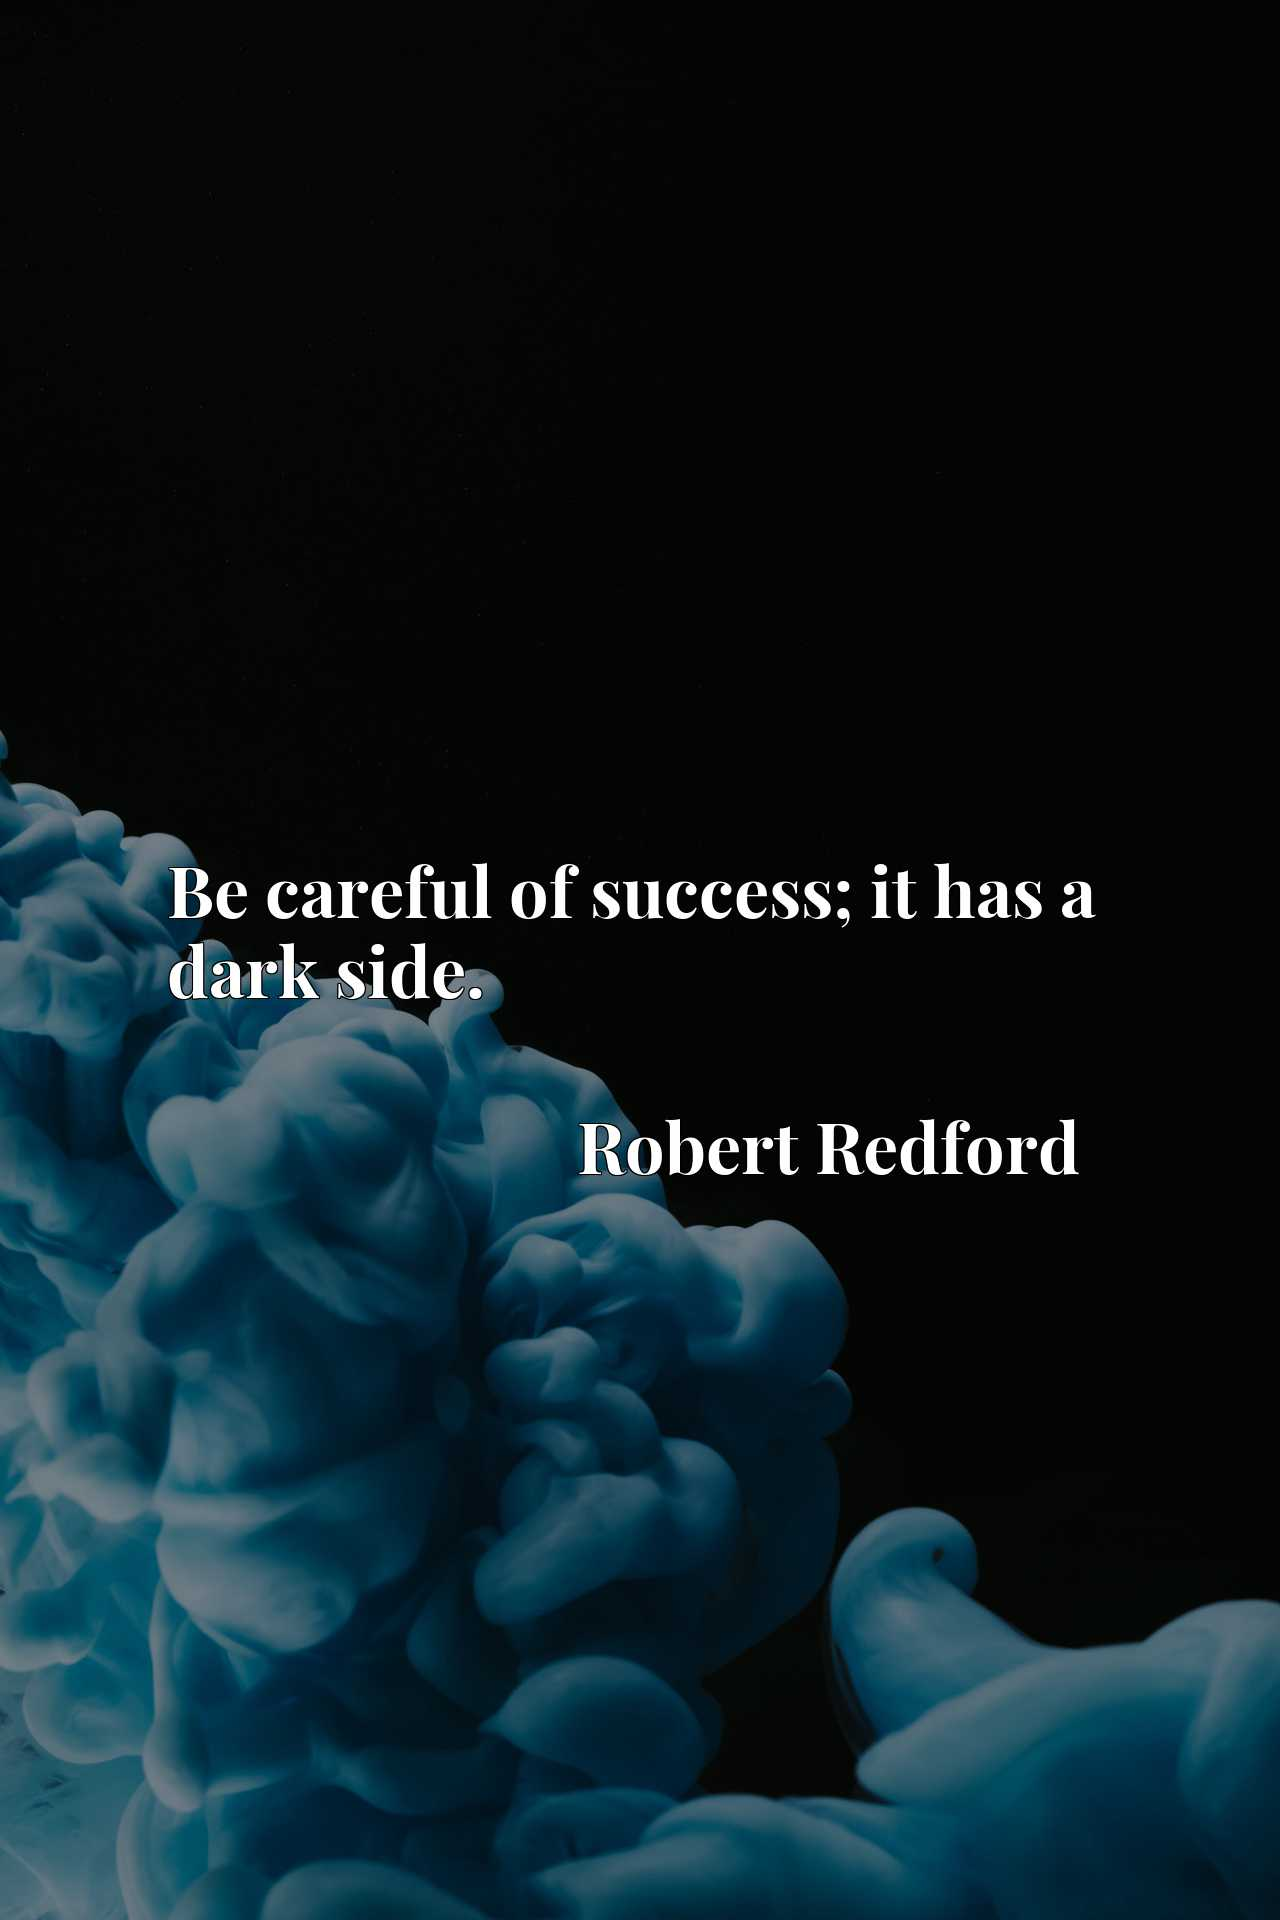 Quote Picture :Be careful of success; it has a dark side.